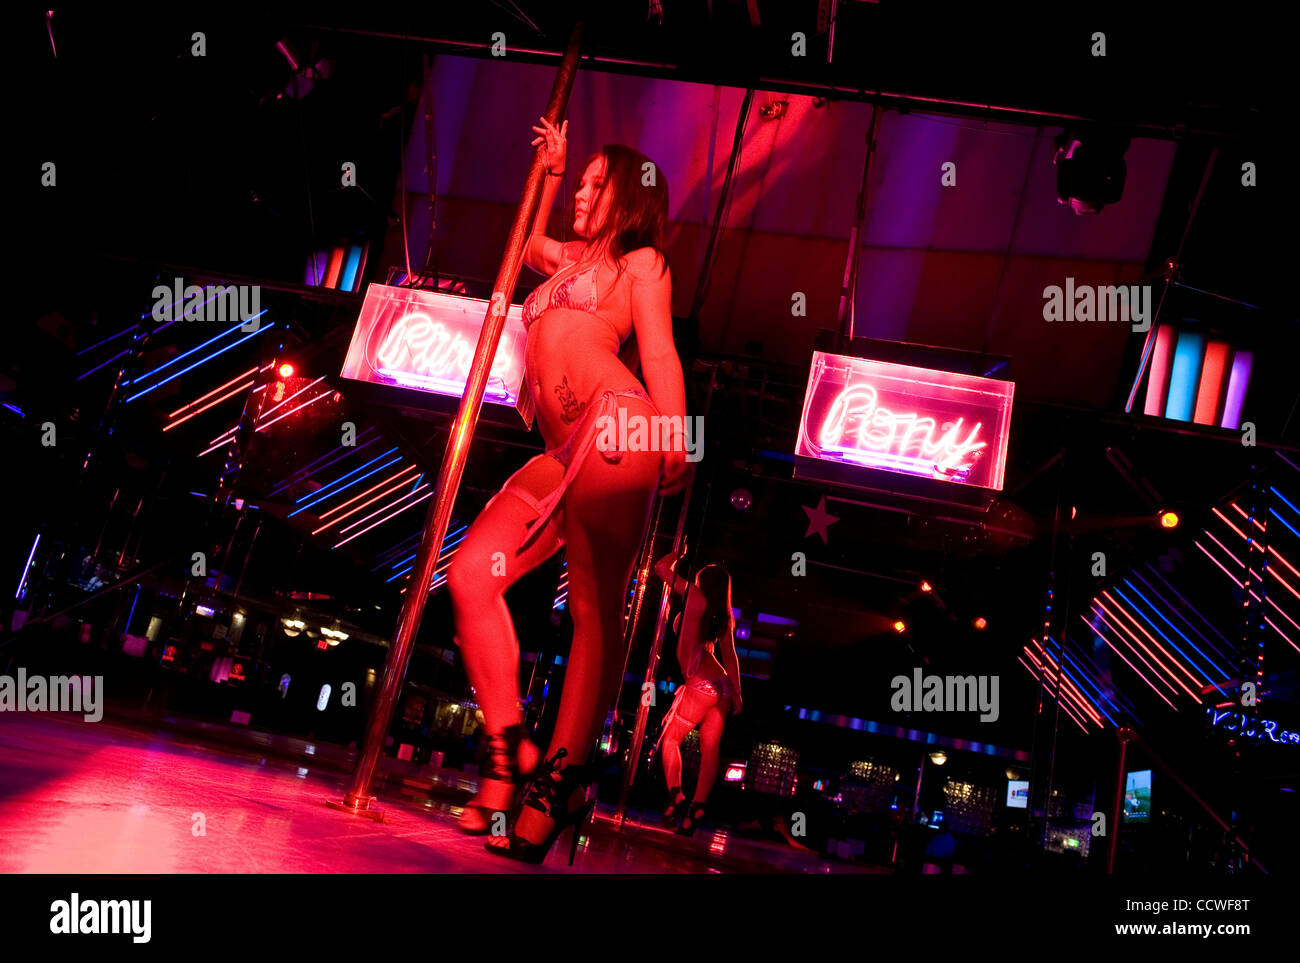 Adult clubs in atlanta ga